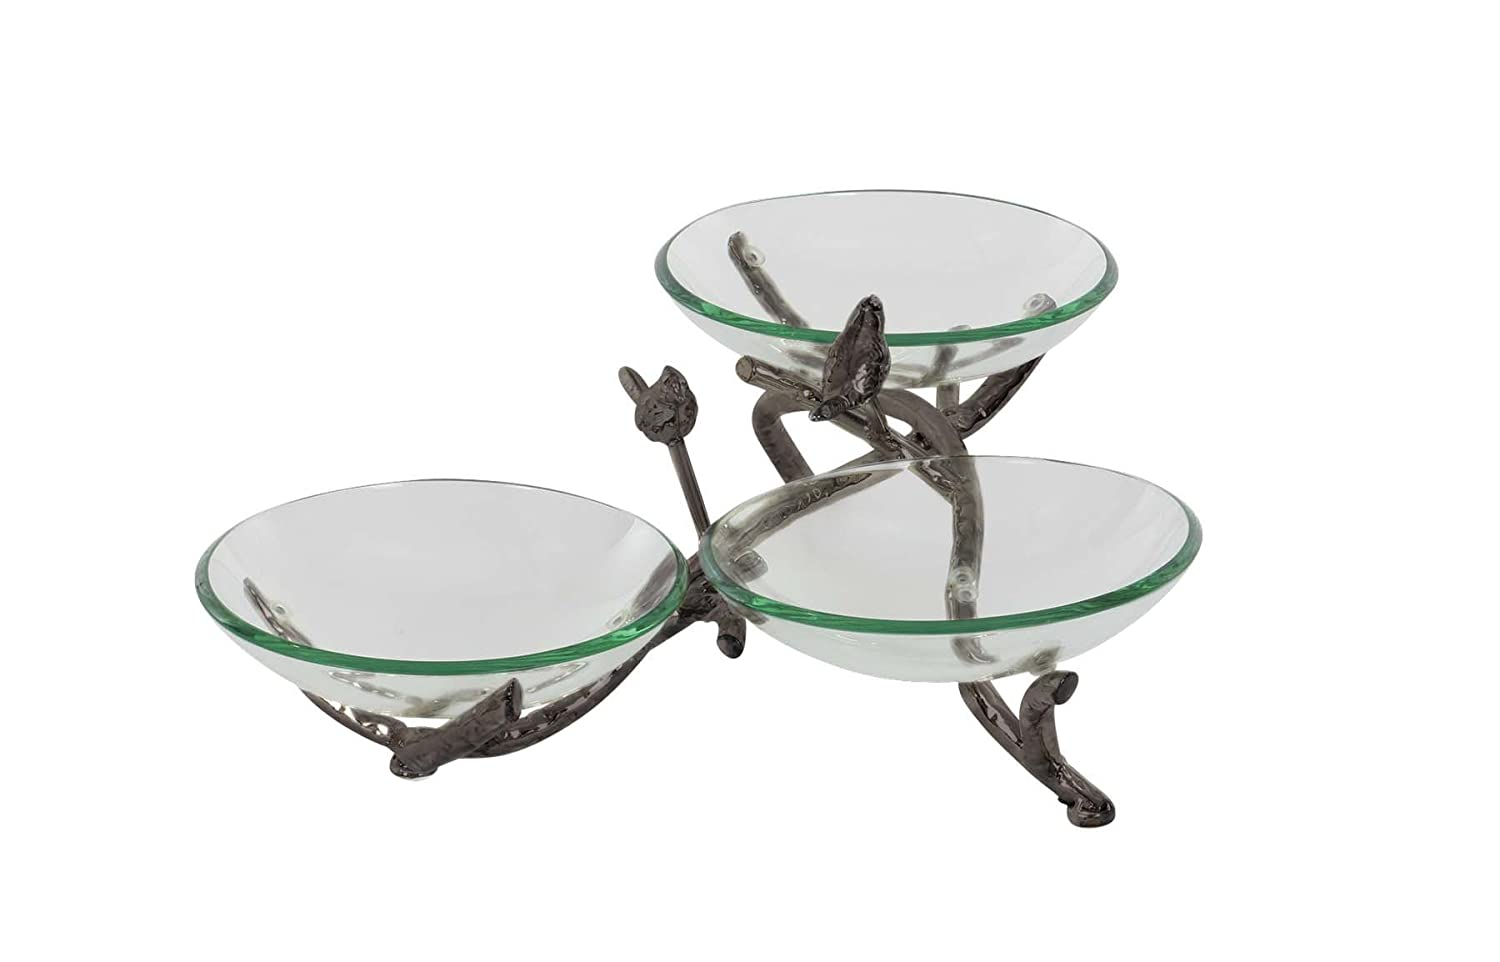 Deco 79 68583 Glass Triple Bowl with Iron Twig Holders and Stand Black//Green